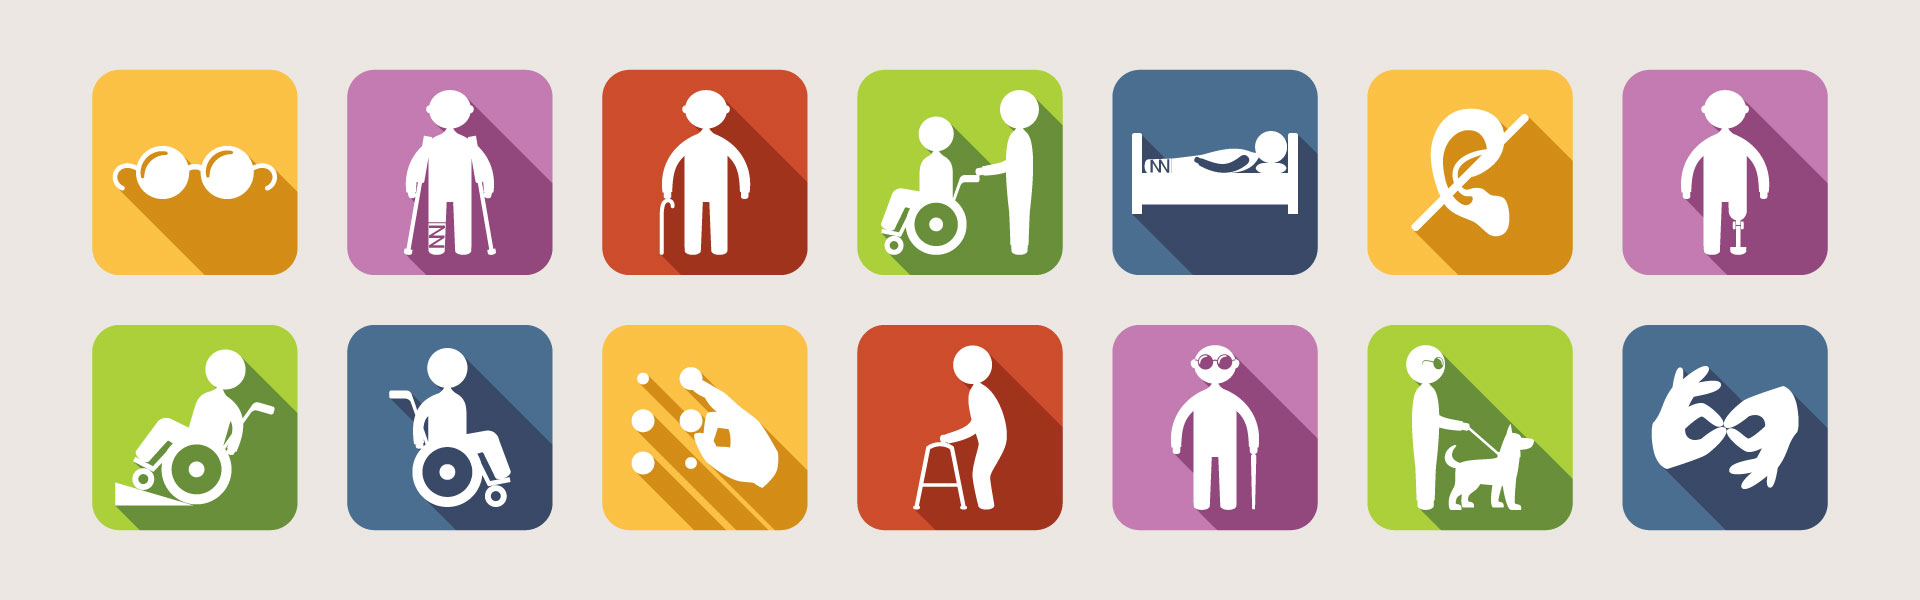 Pictogrammes montrant divers types de handicaps